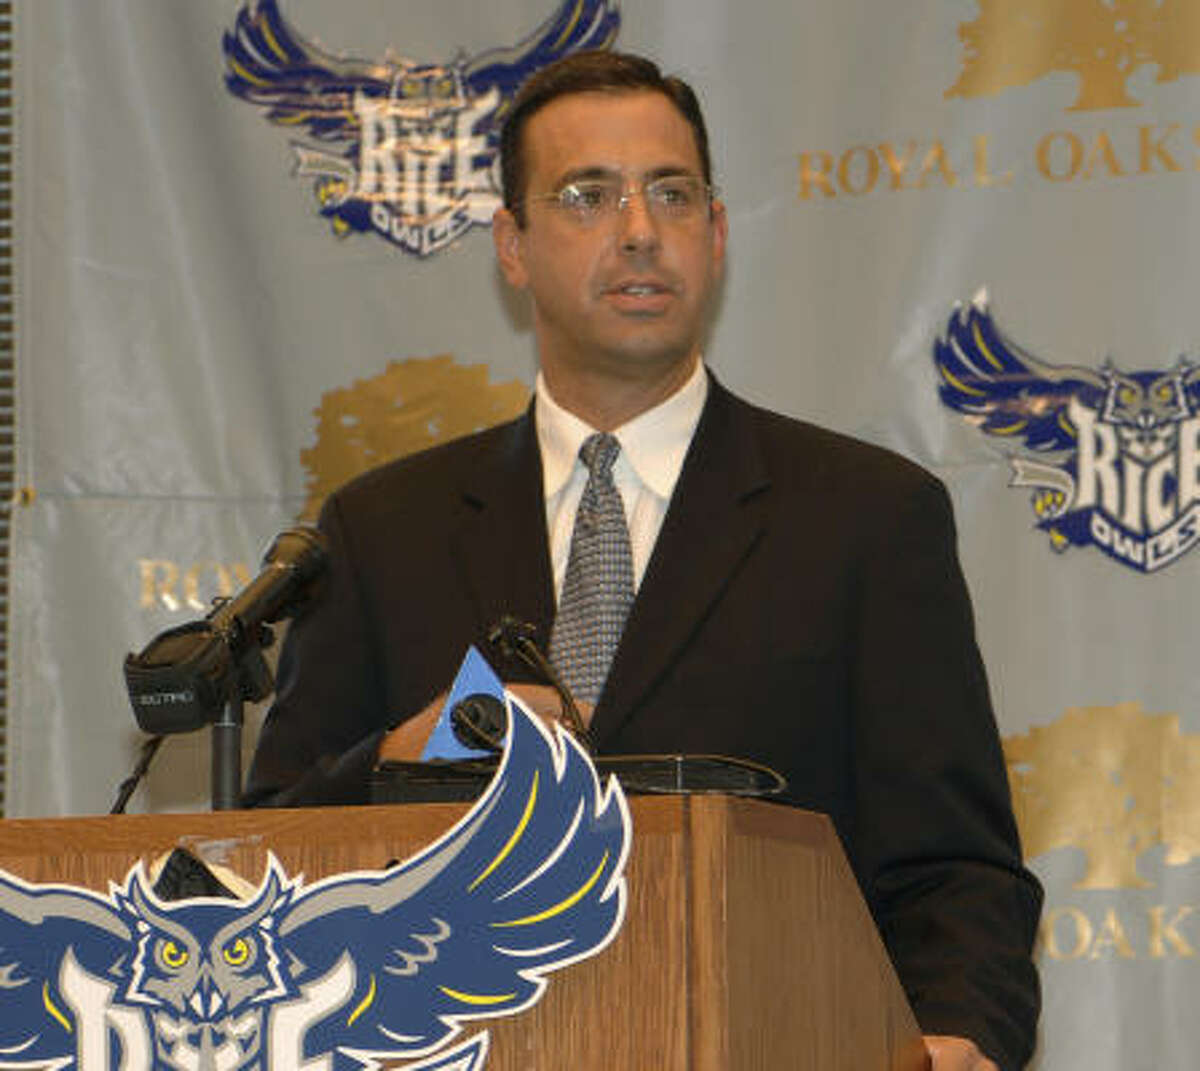 New Rice athletic director Chris Del Conte believes the Owls can be contenders in every sport they play.